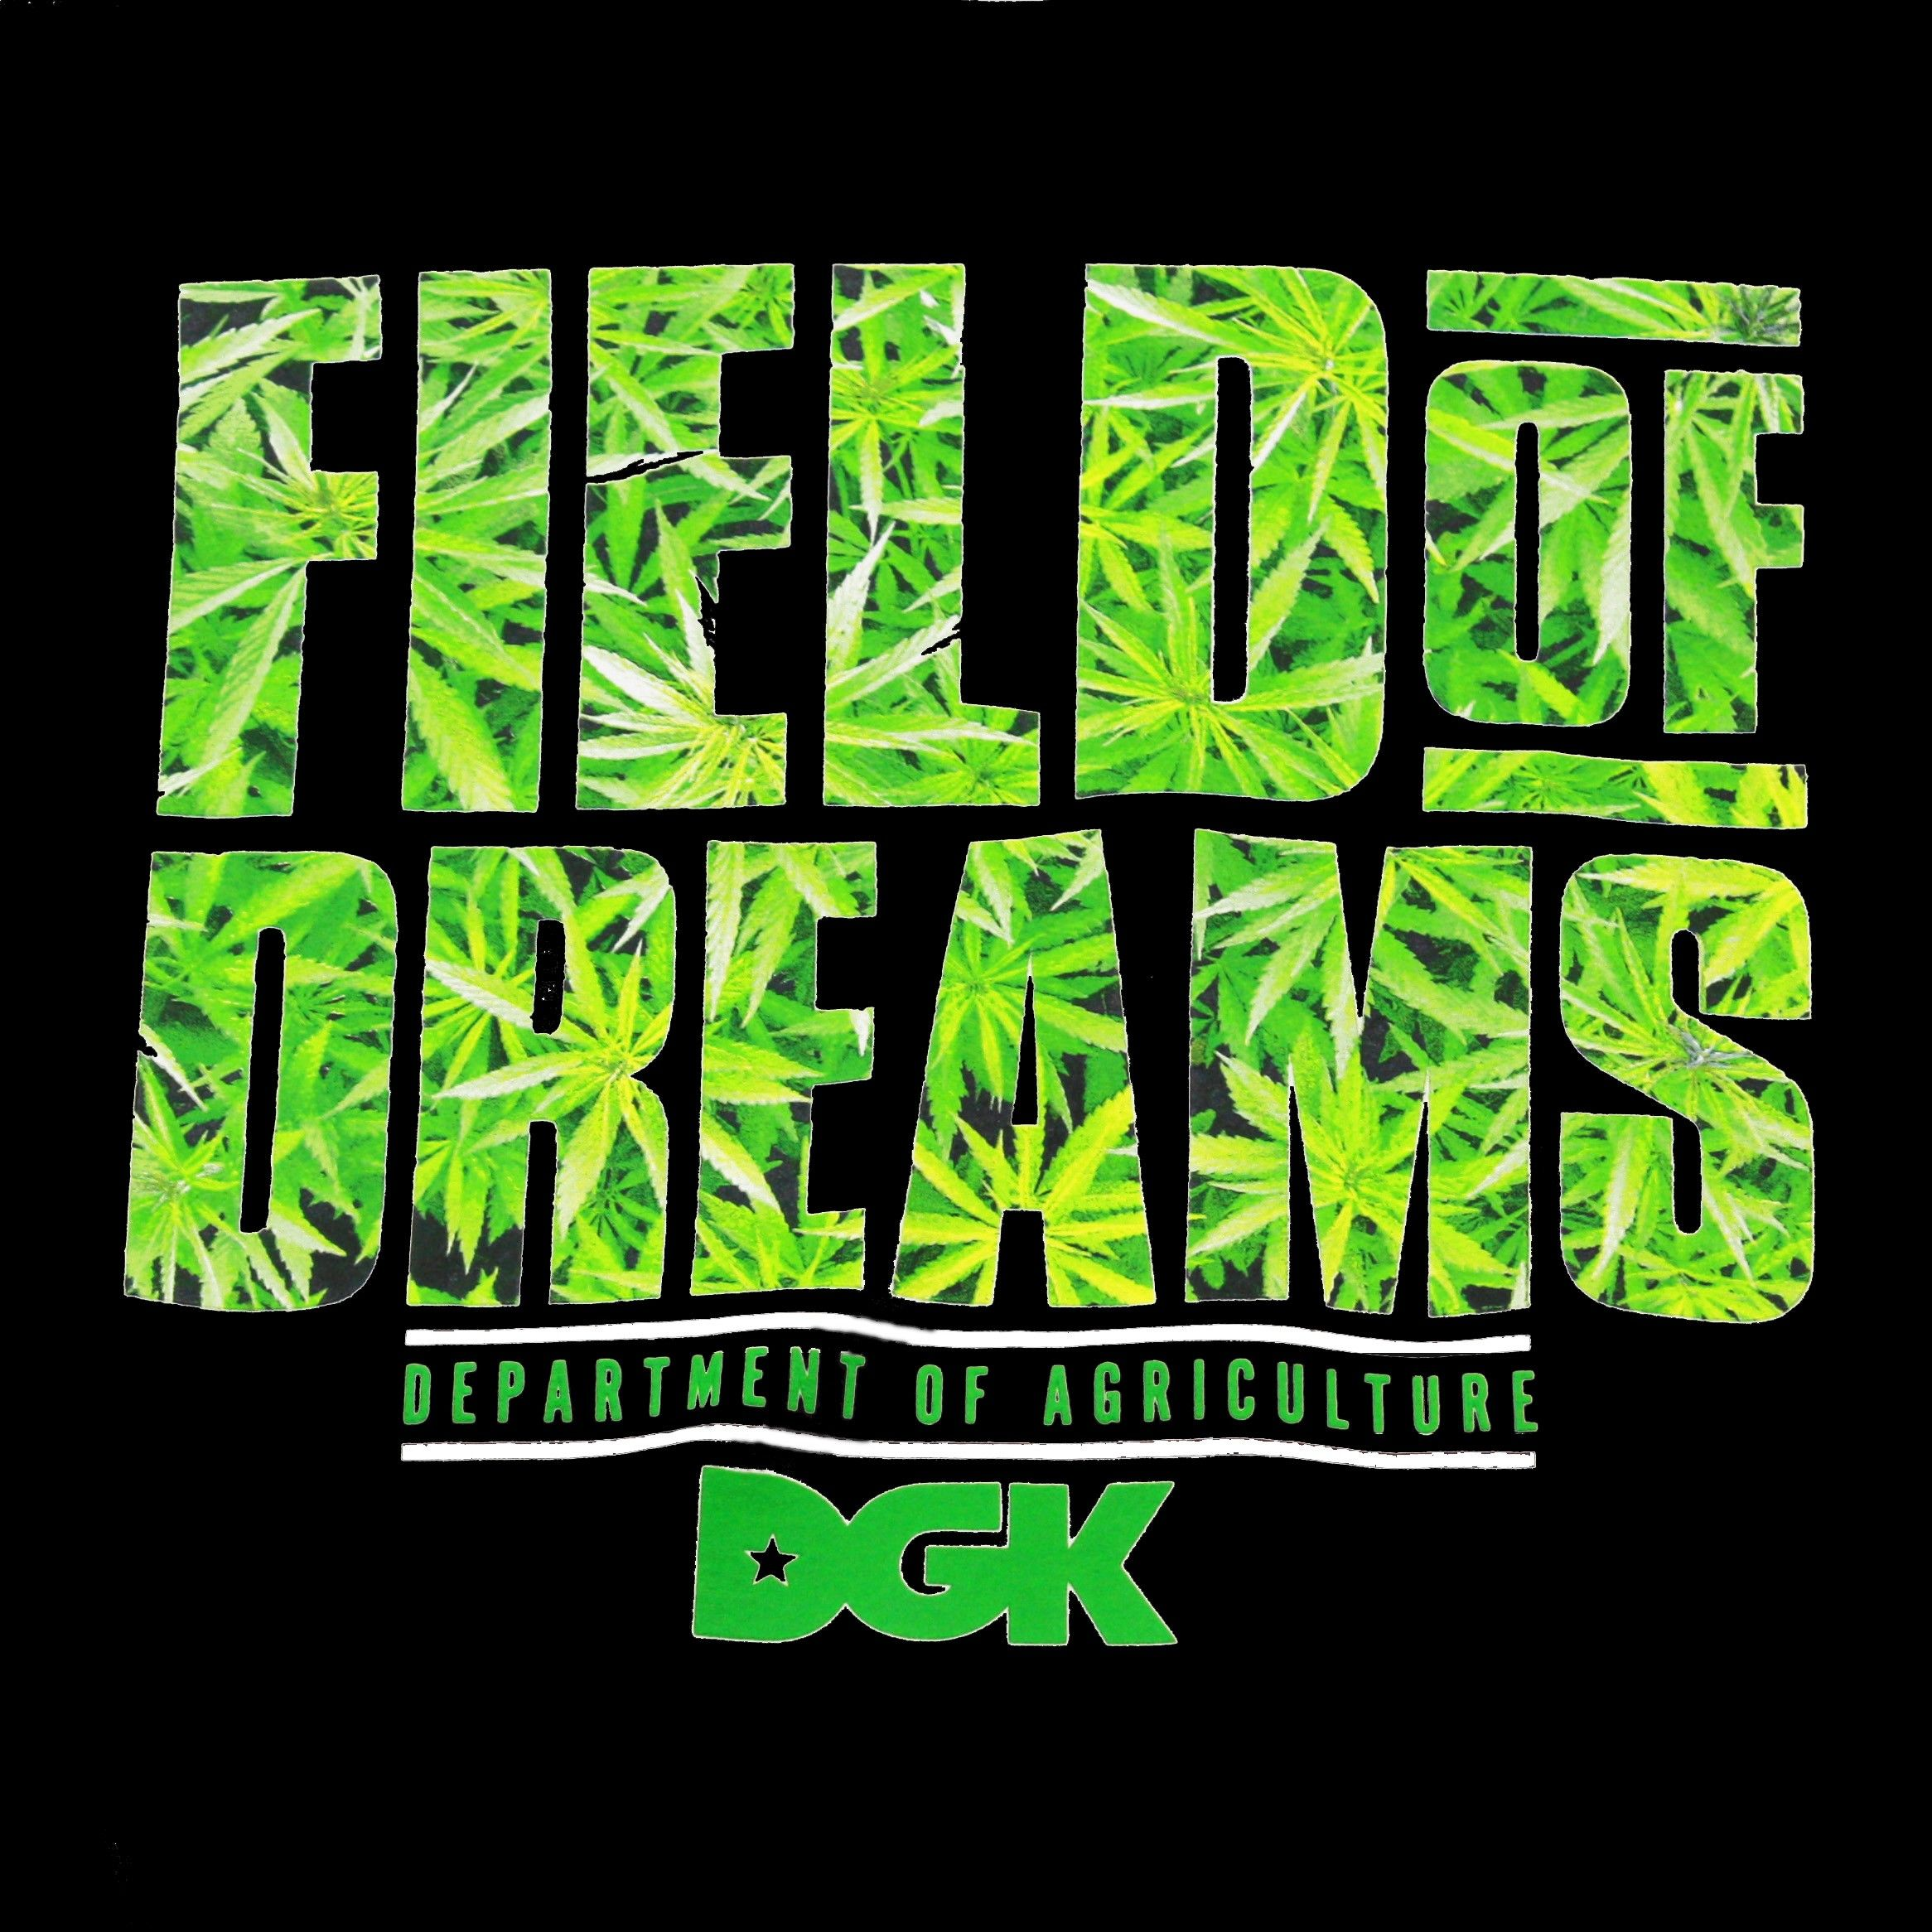 Dgk Weed Wallpaper | www.imgkid.com - The Image Kid Has It!